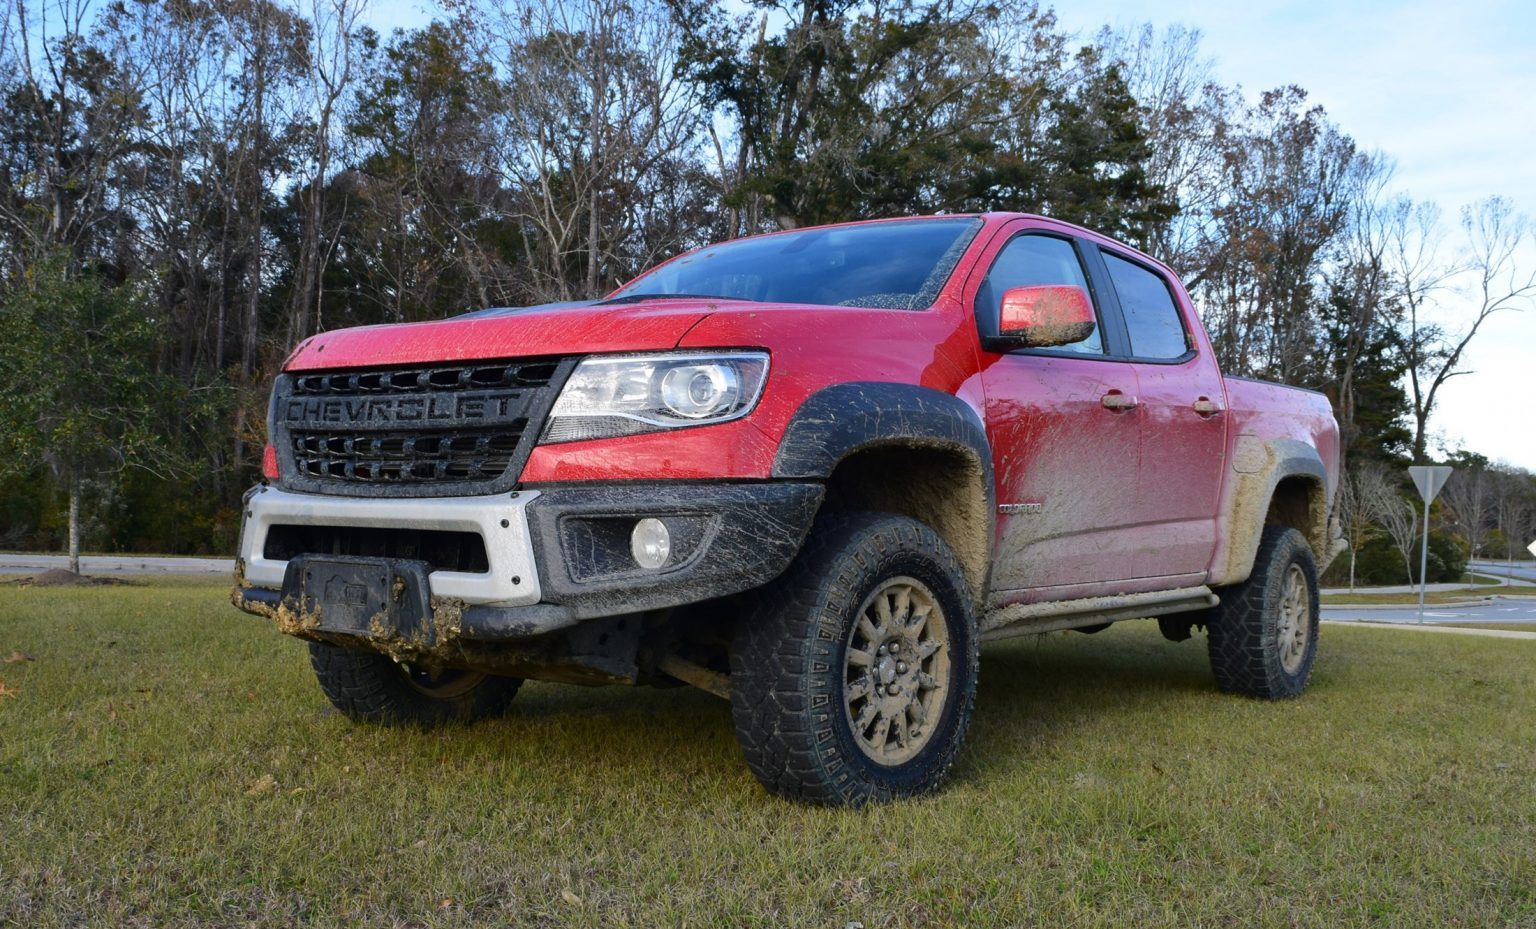 2020 Chevrolet Colorado Zr2 Bison Duramax Diesel Review 7 Chevrolet Colorado Duramax Diesel Duramax